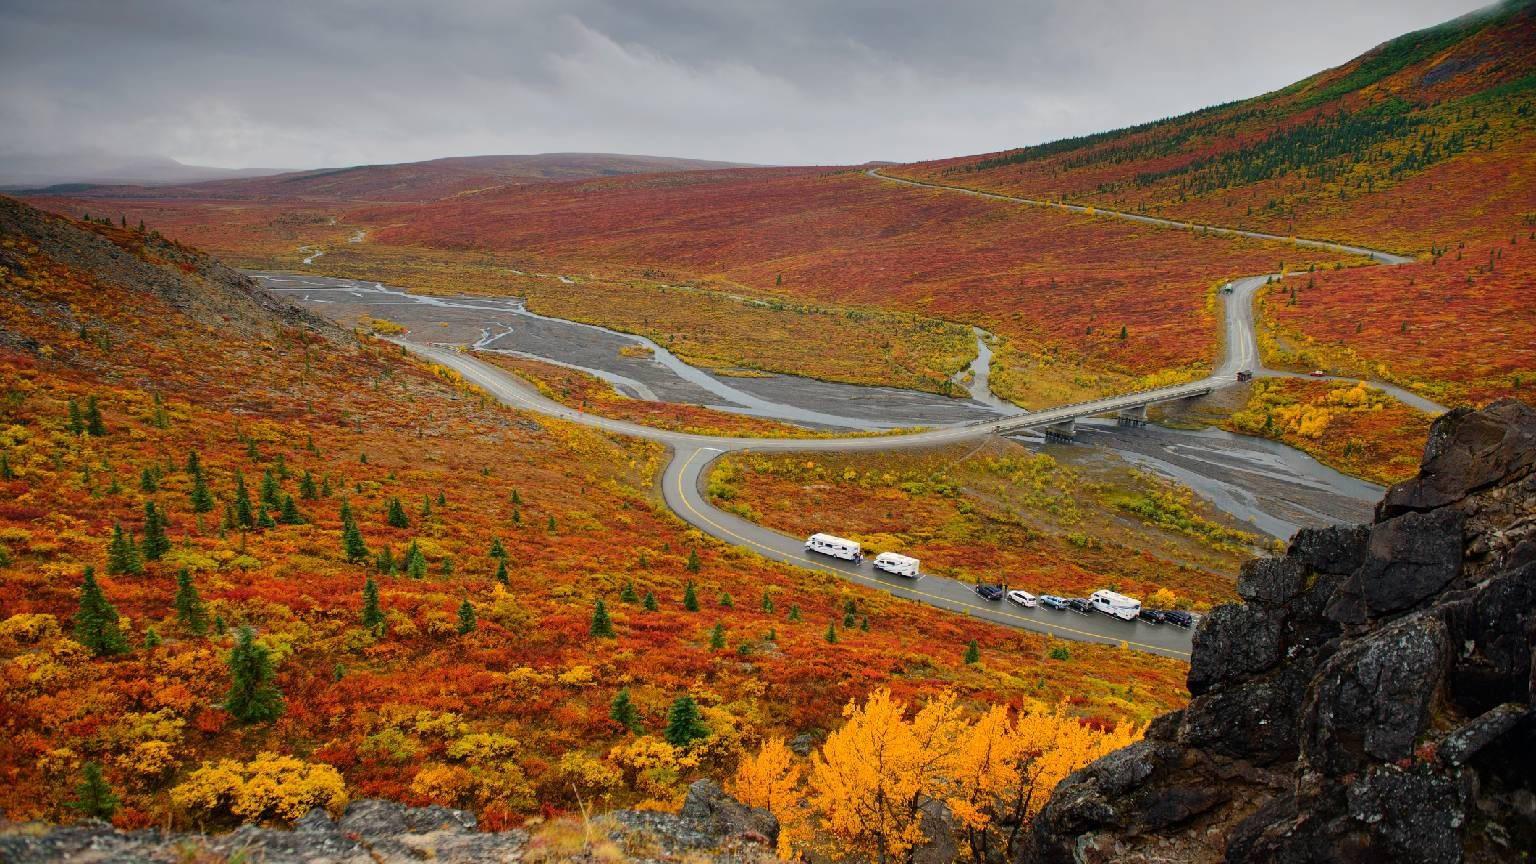 Aerial view of RVs and cars parked in Denali National Park in Alaska with fall colored leaves all around.